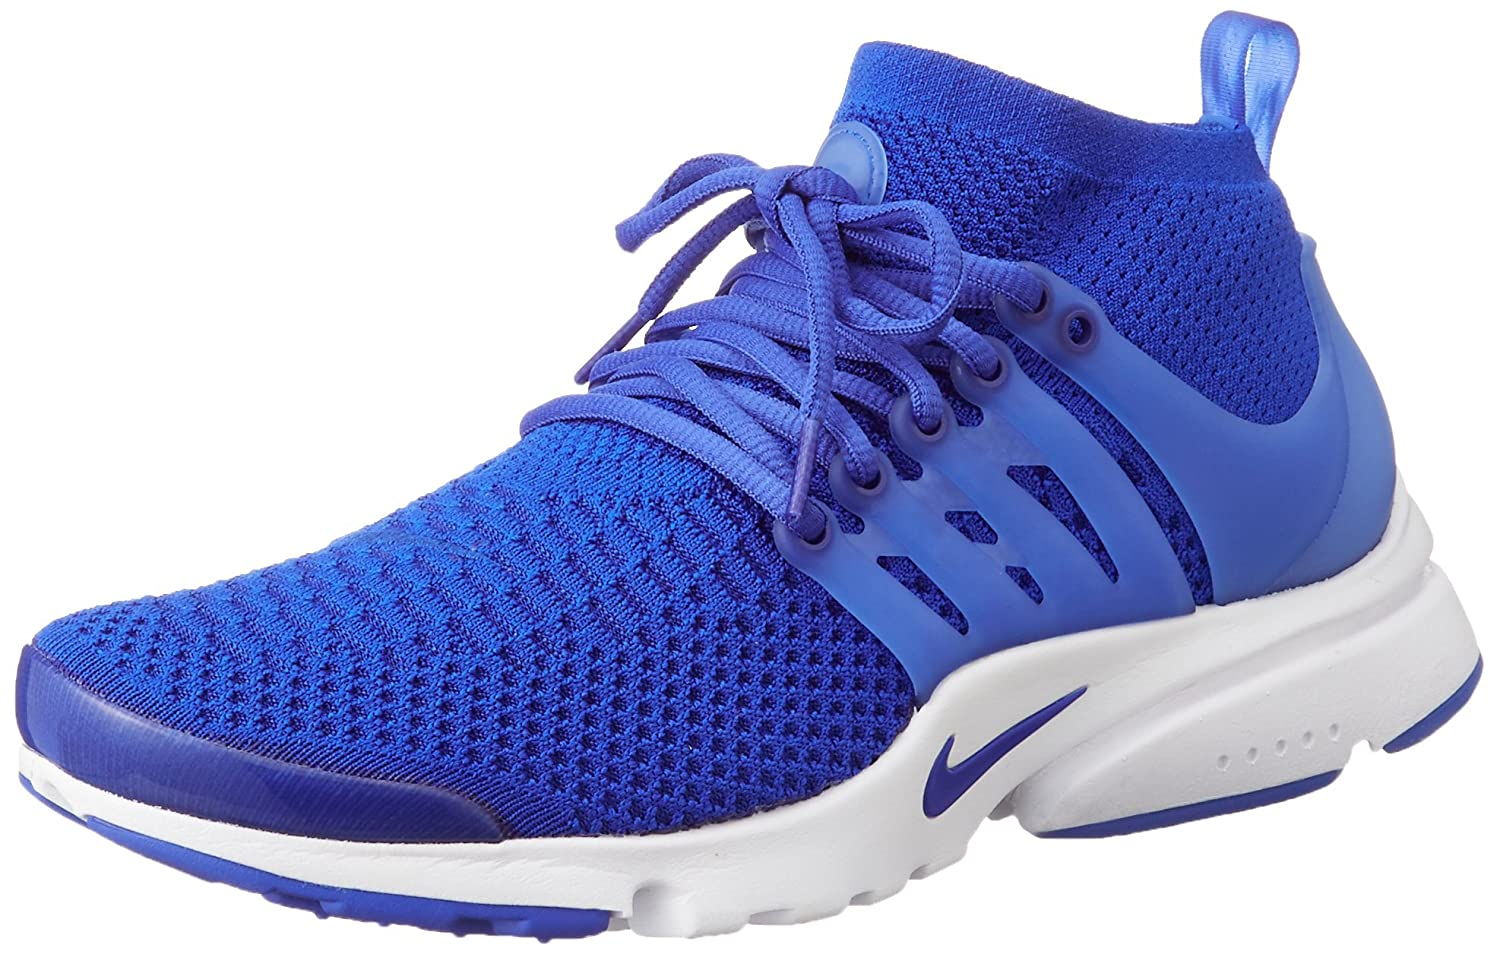 separation shoes 44eb5 e4cbf Nike Men s Air Presto Flyknit Ultra RACER BLUE RACER BLUE-WHITE-TOTAL  CRIMSON RACER BLUE RACER BLUE-WHITE-TOTAL CRIMSON 9.5 D(M) US  Amazon.in   Shoes   ...